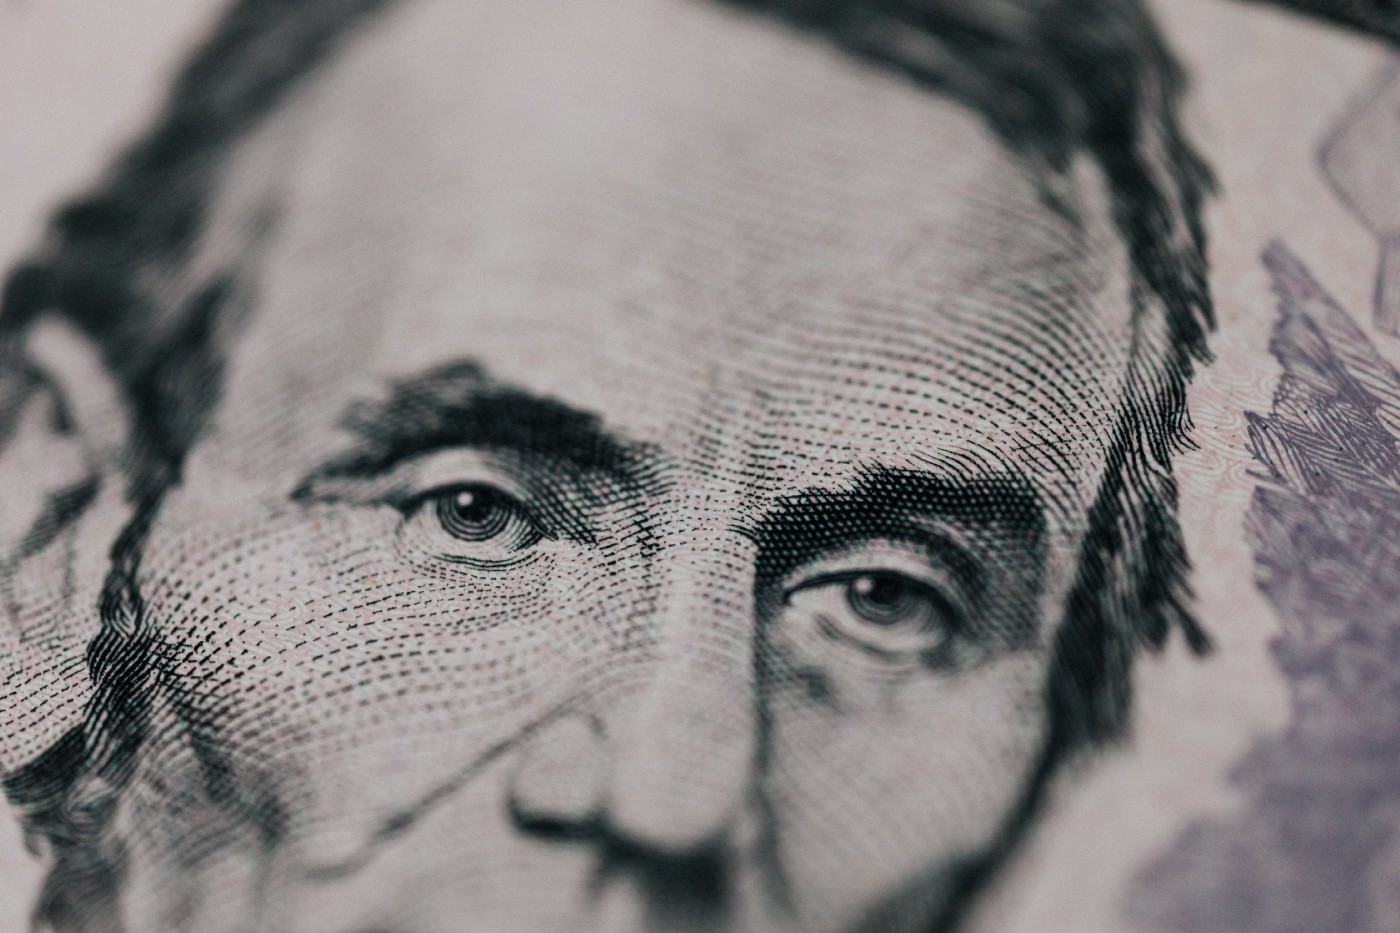 Picture of Abraham Lincoln's eyes on the $5 bill.